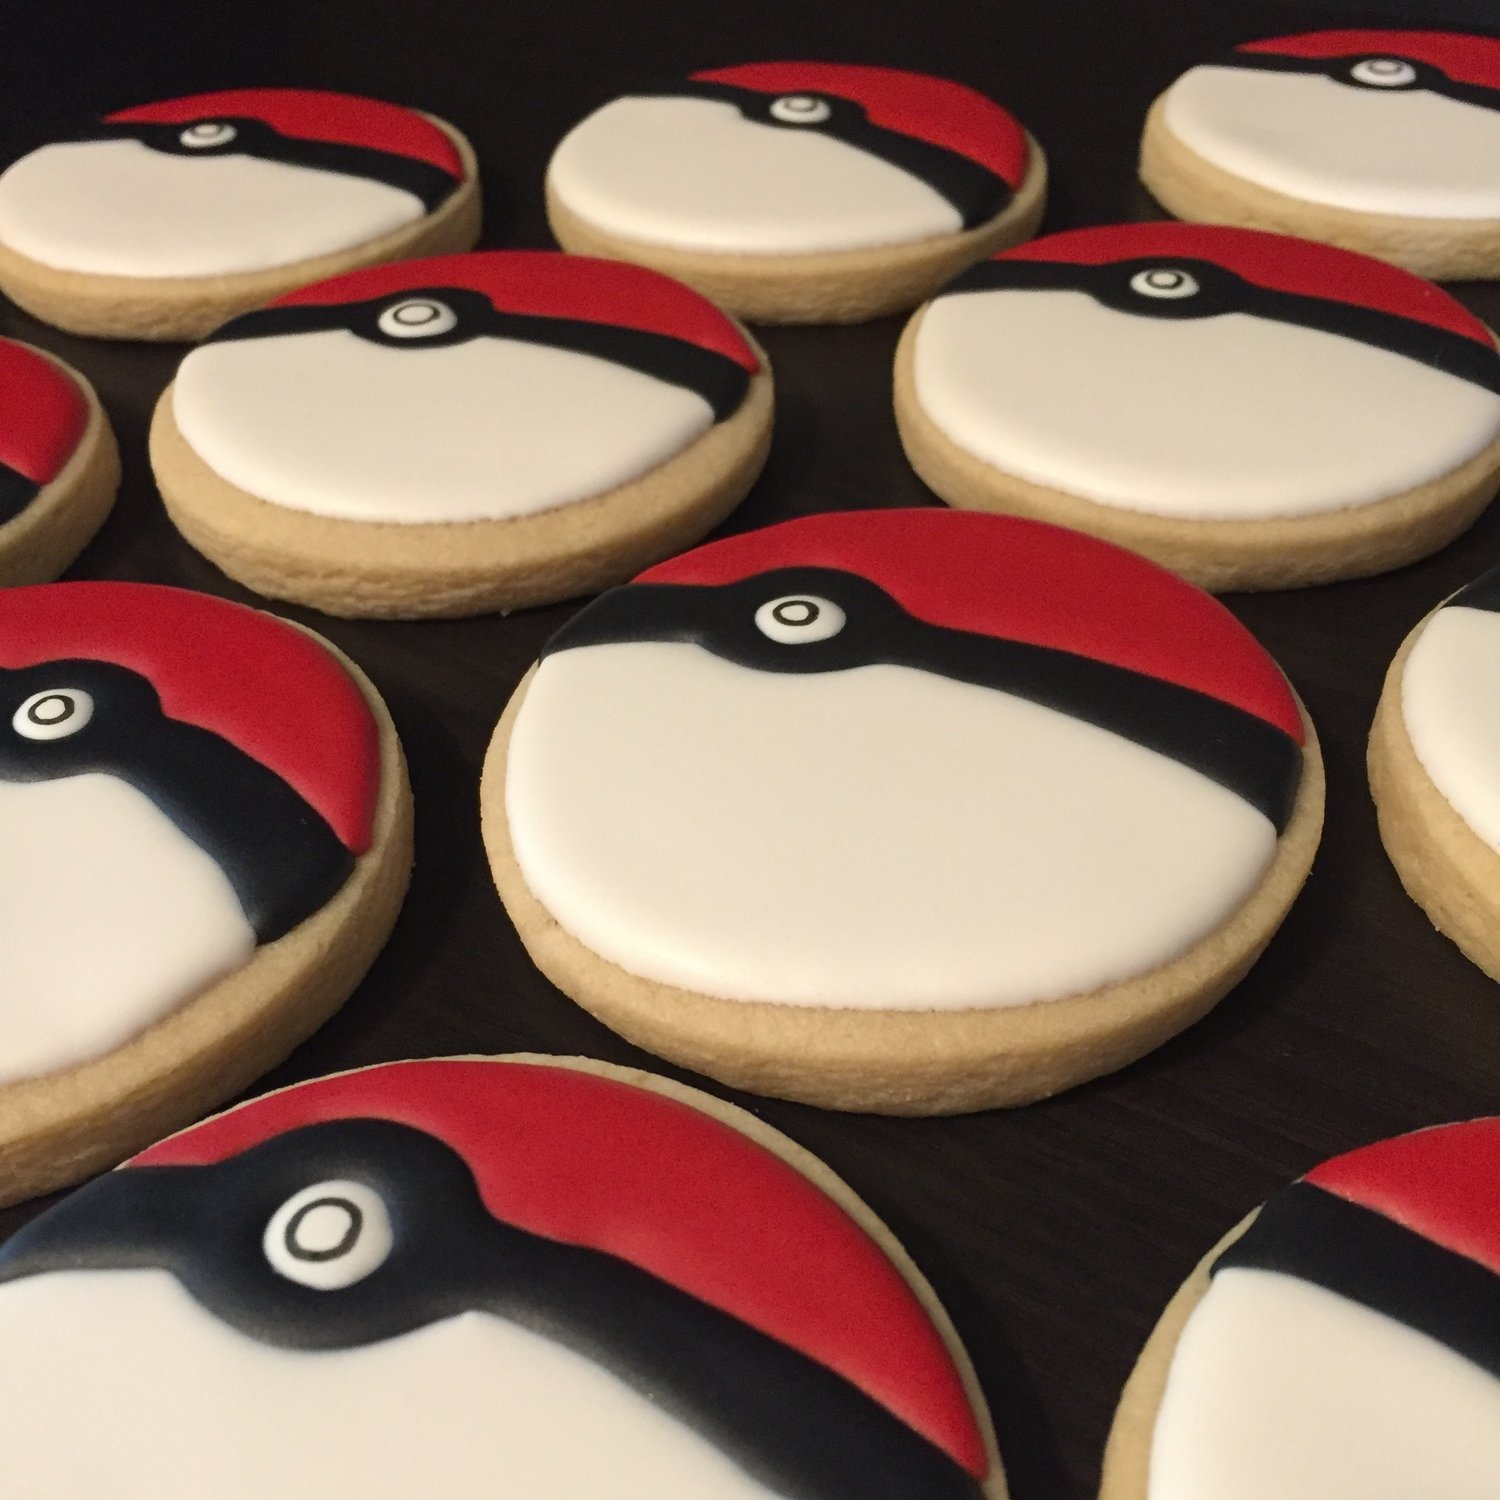 POKEMON BALLS (1 DOZEN)